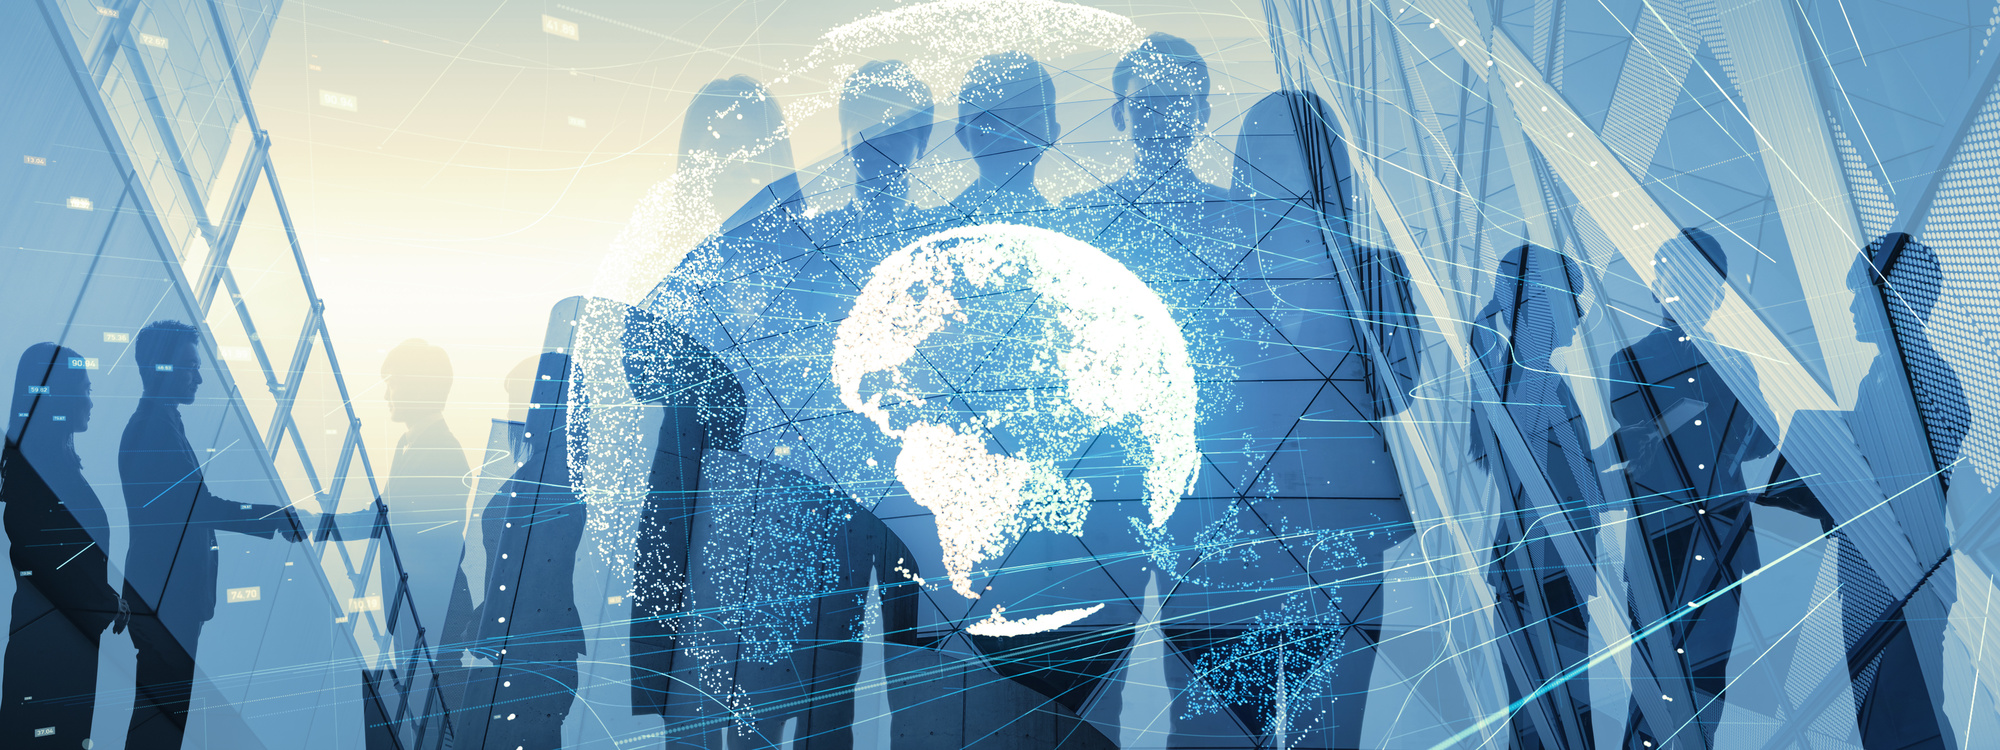 Want to Grow Globally? Check Out These Tips for International B2B Expansion